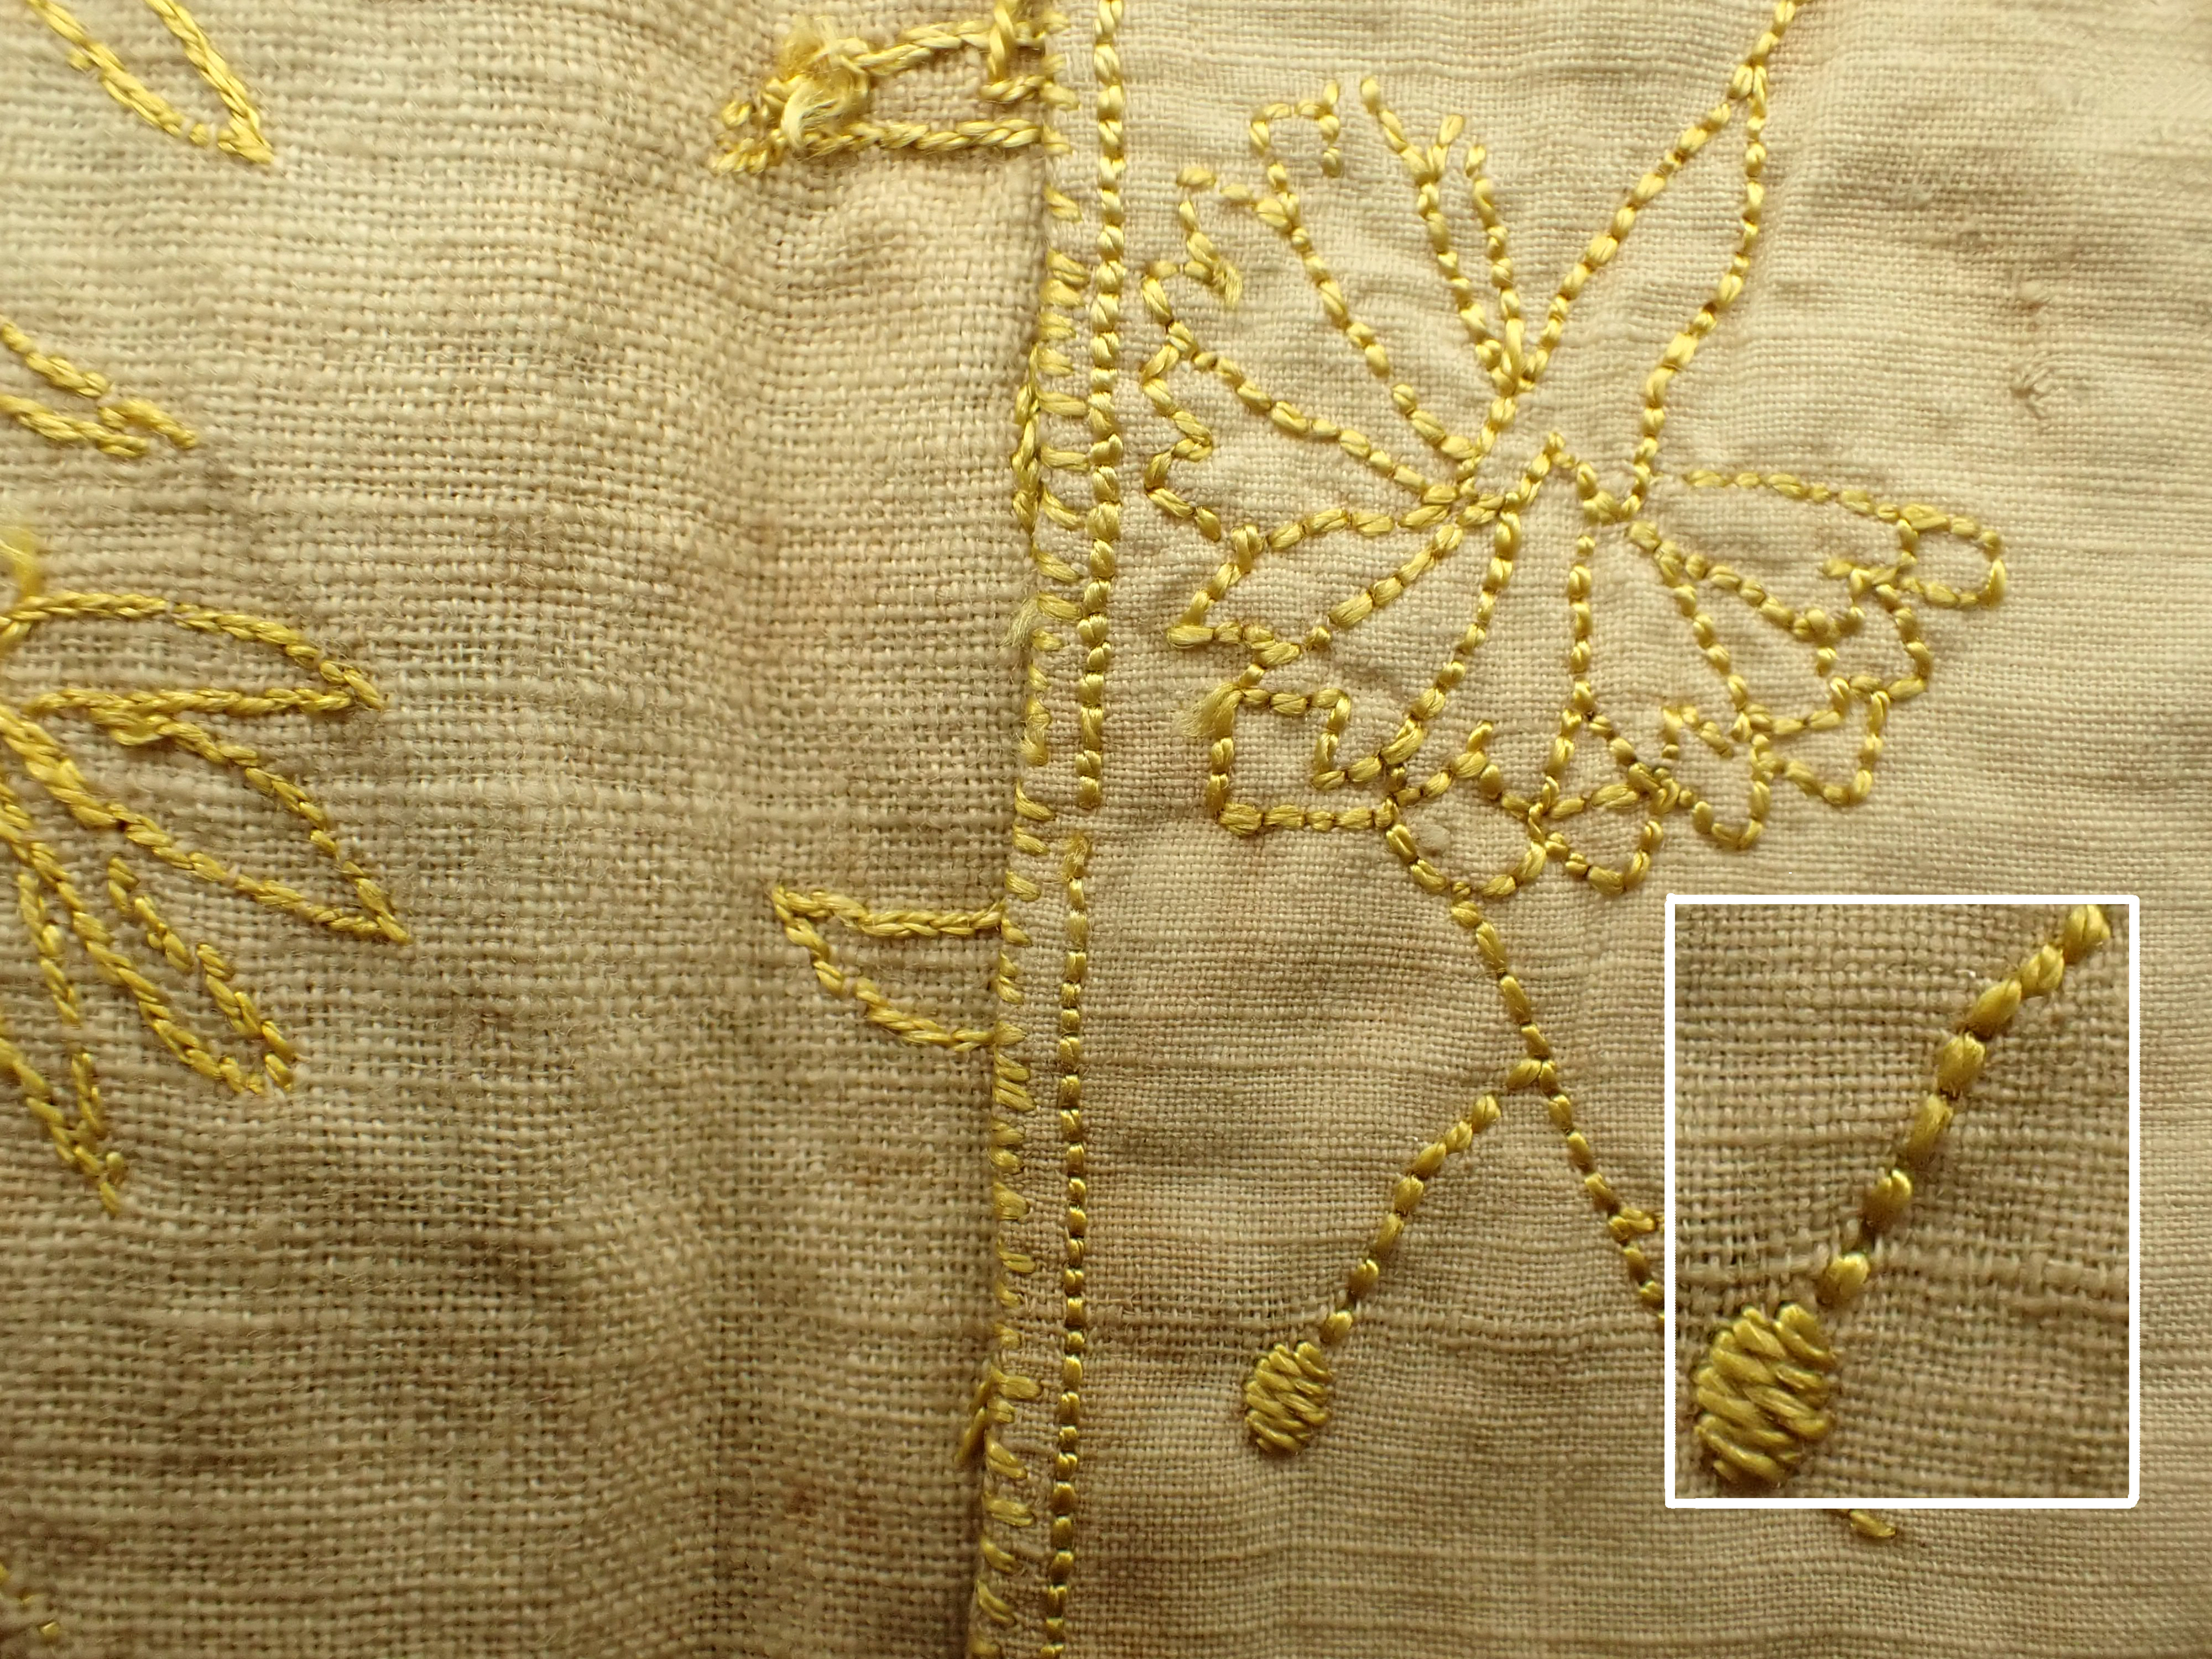 photo to show detail of flower and stitches worked in yellow silk on undyed linen card case with insert at 250x to show that the silk is floss, 2-ply.